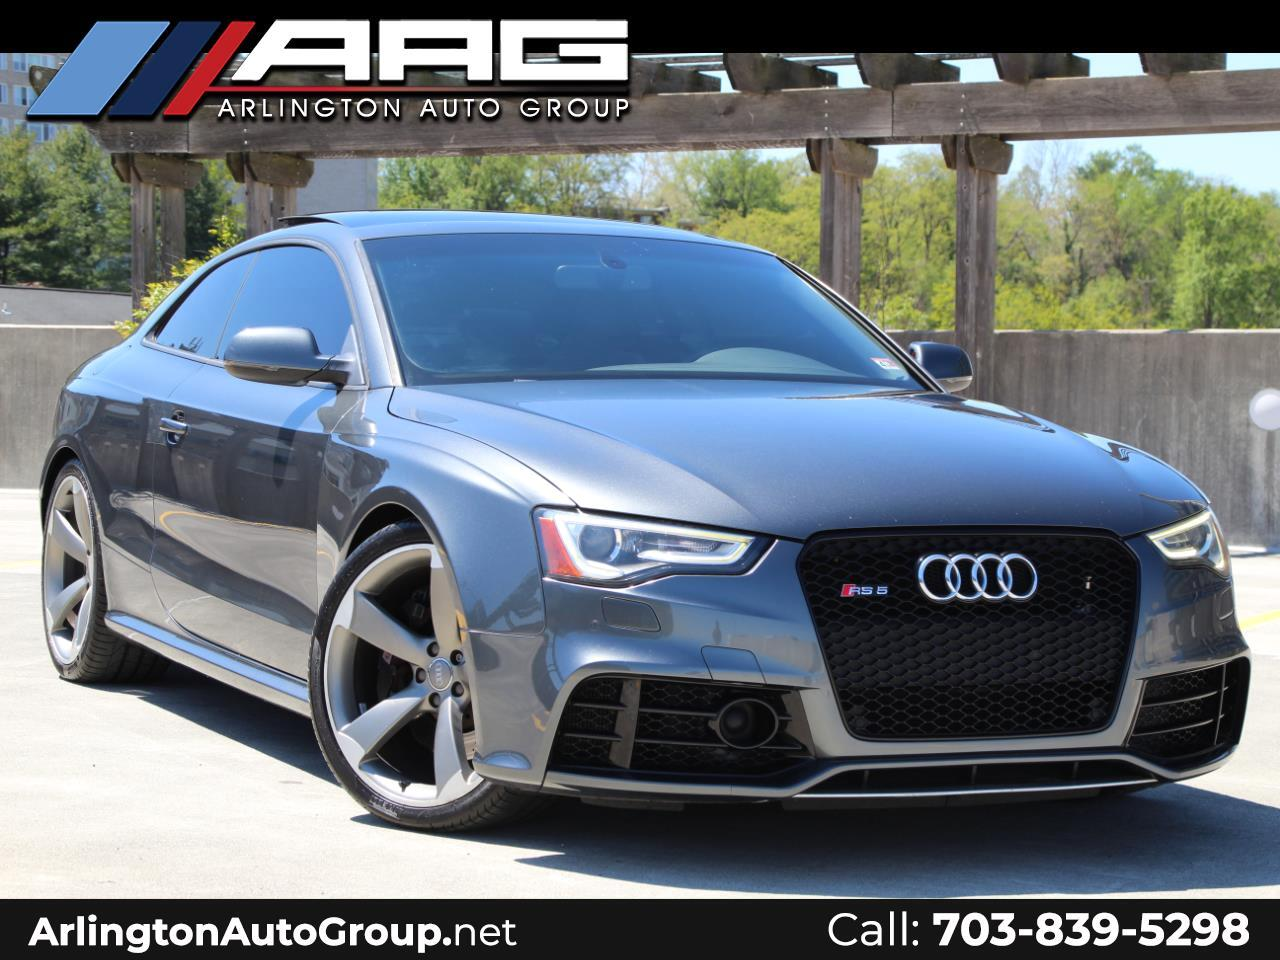 Audi RS 5 2dr Cpe 2013